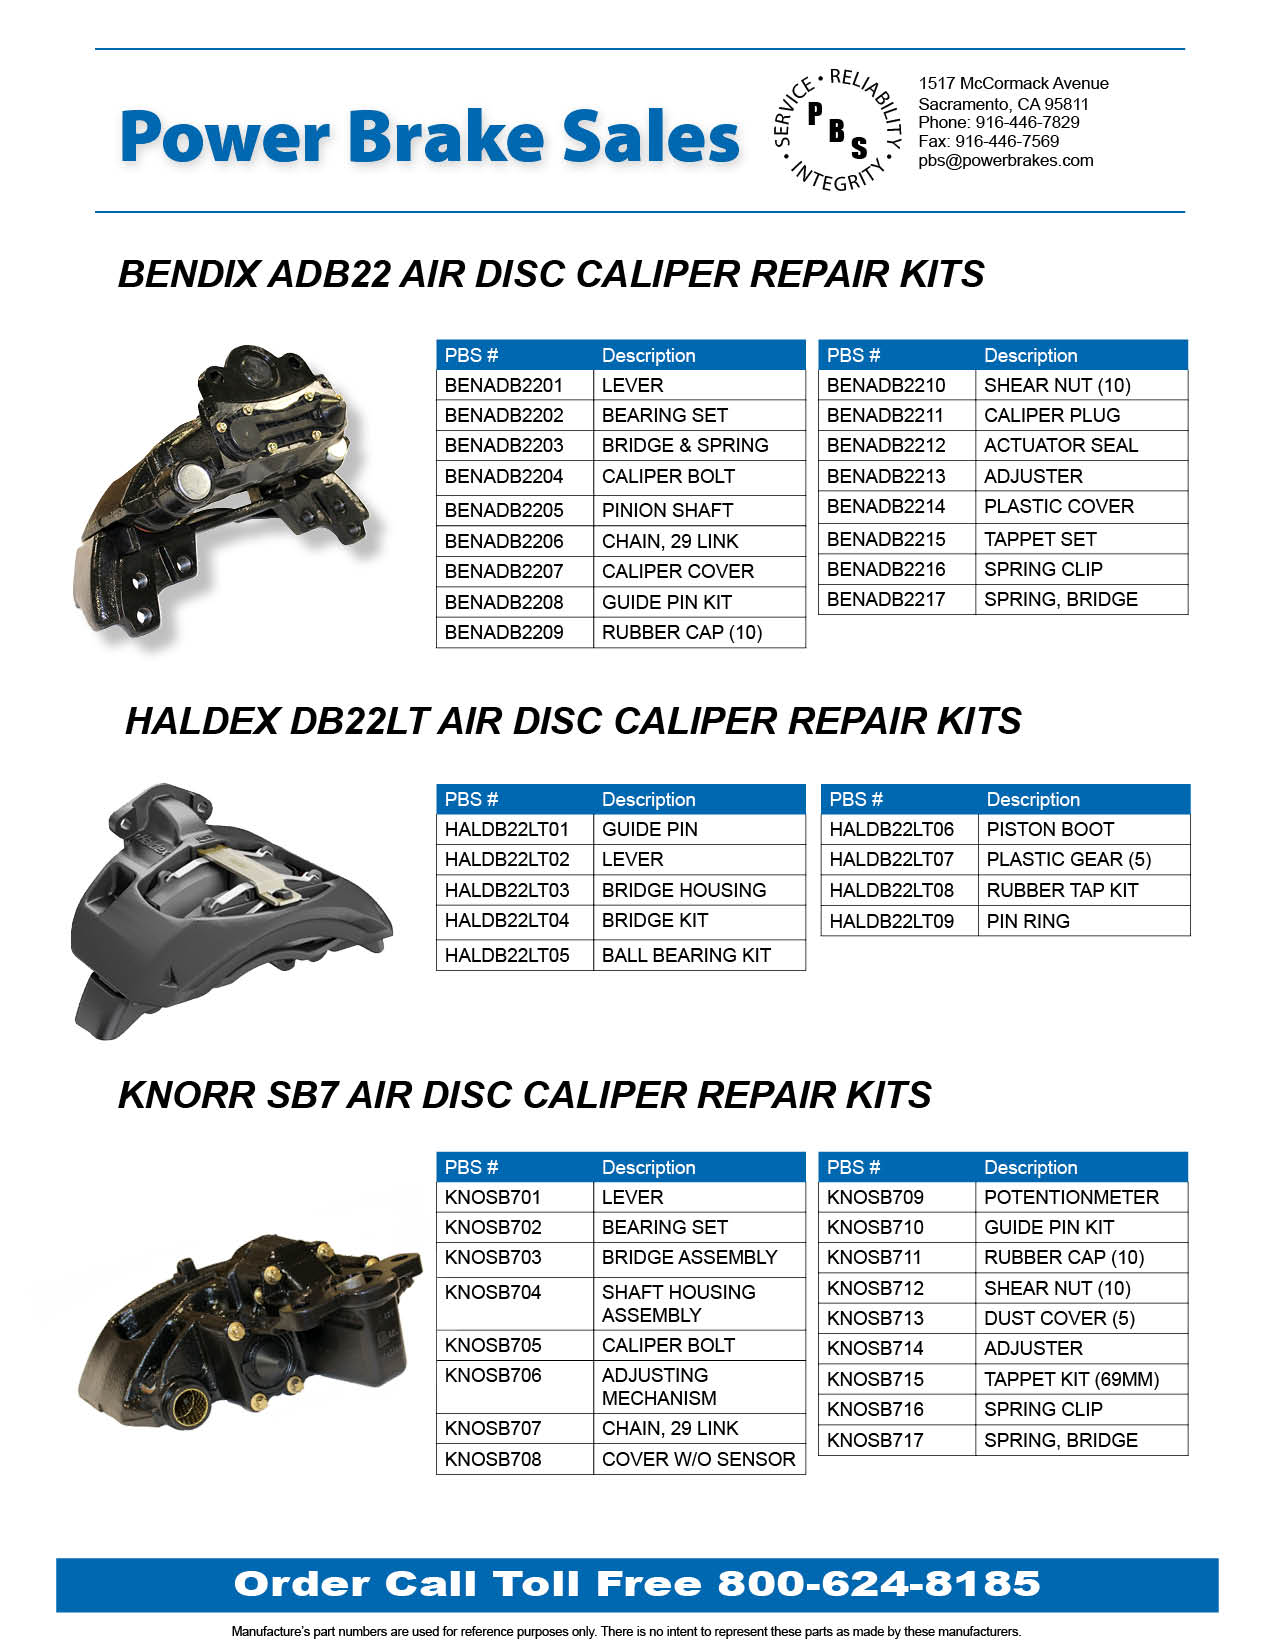 Power Brake Sales Now Stocking Air Disc Caliper Repair Kits